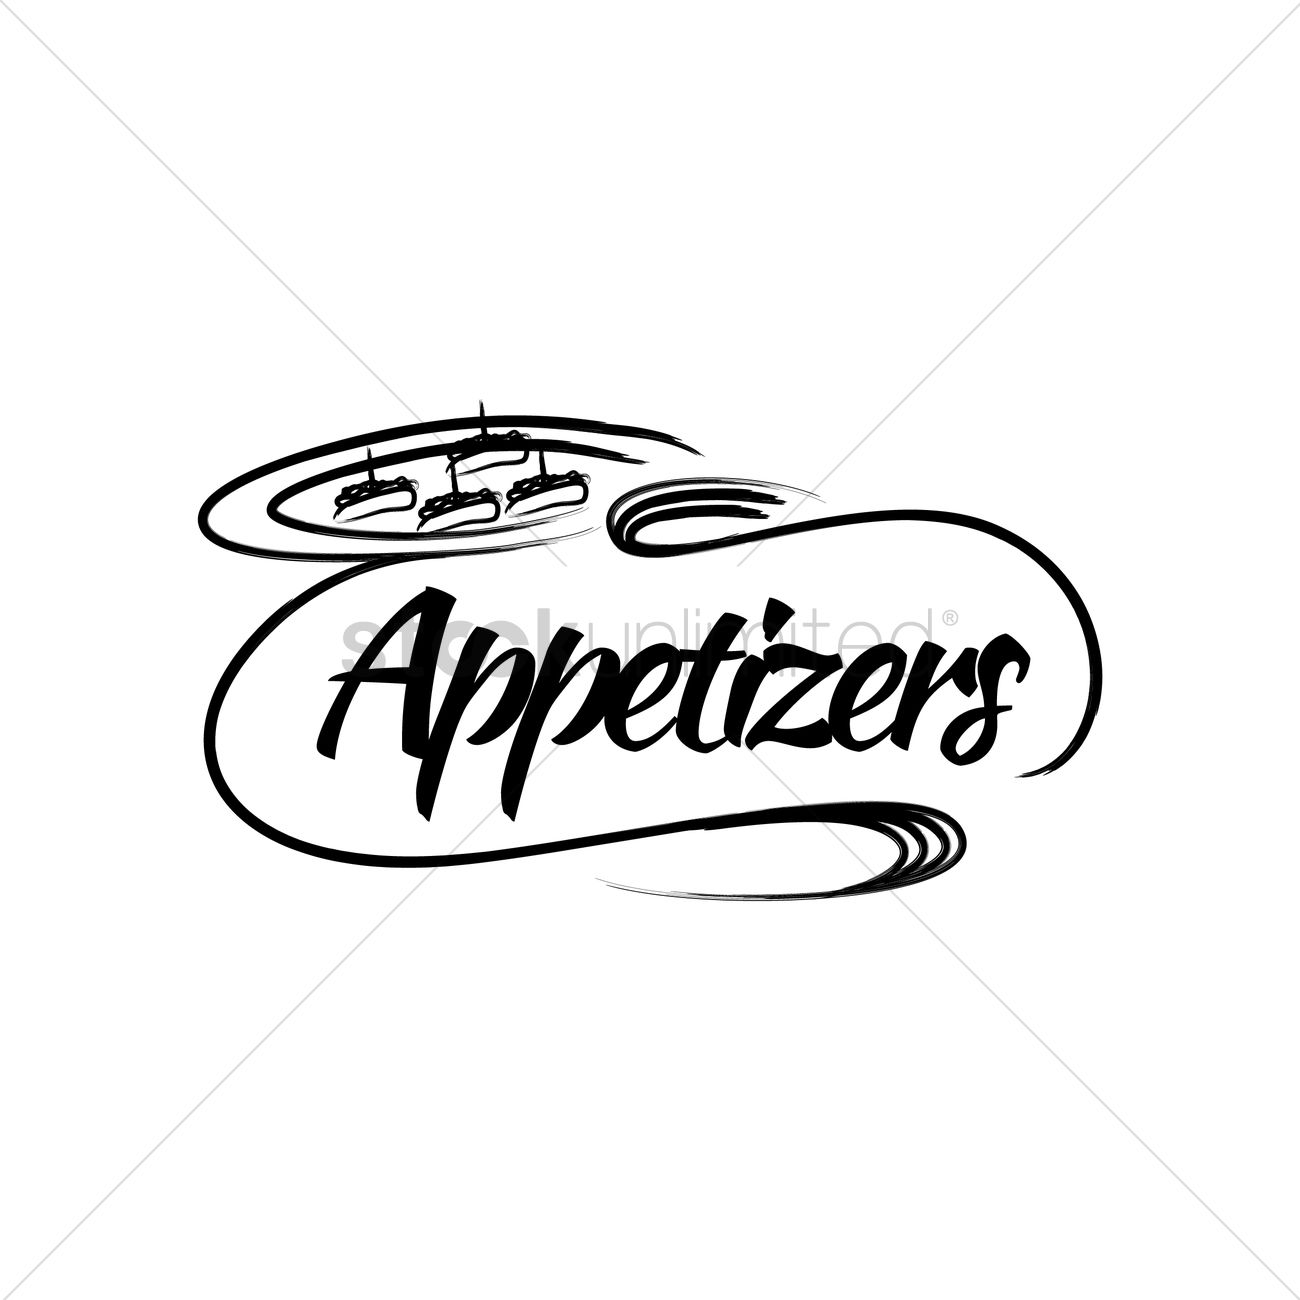 Appetizers and drinks clipart black and white jpg download Appetizer Cliparts | Free download best Appetizer Cliparts on ... jpg download